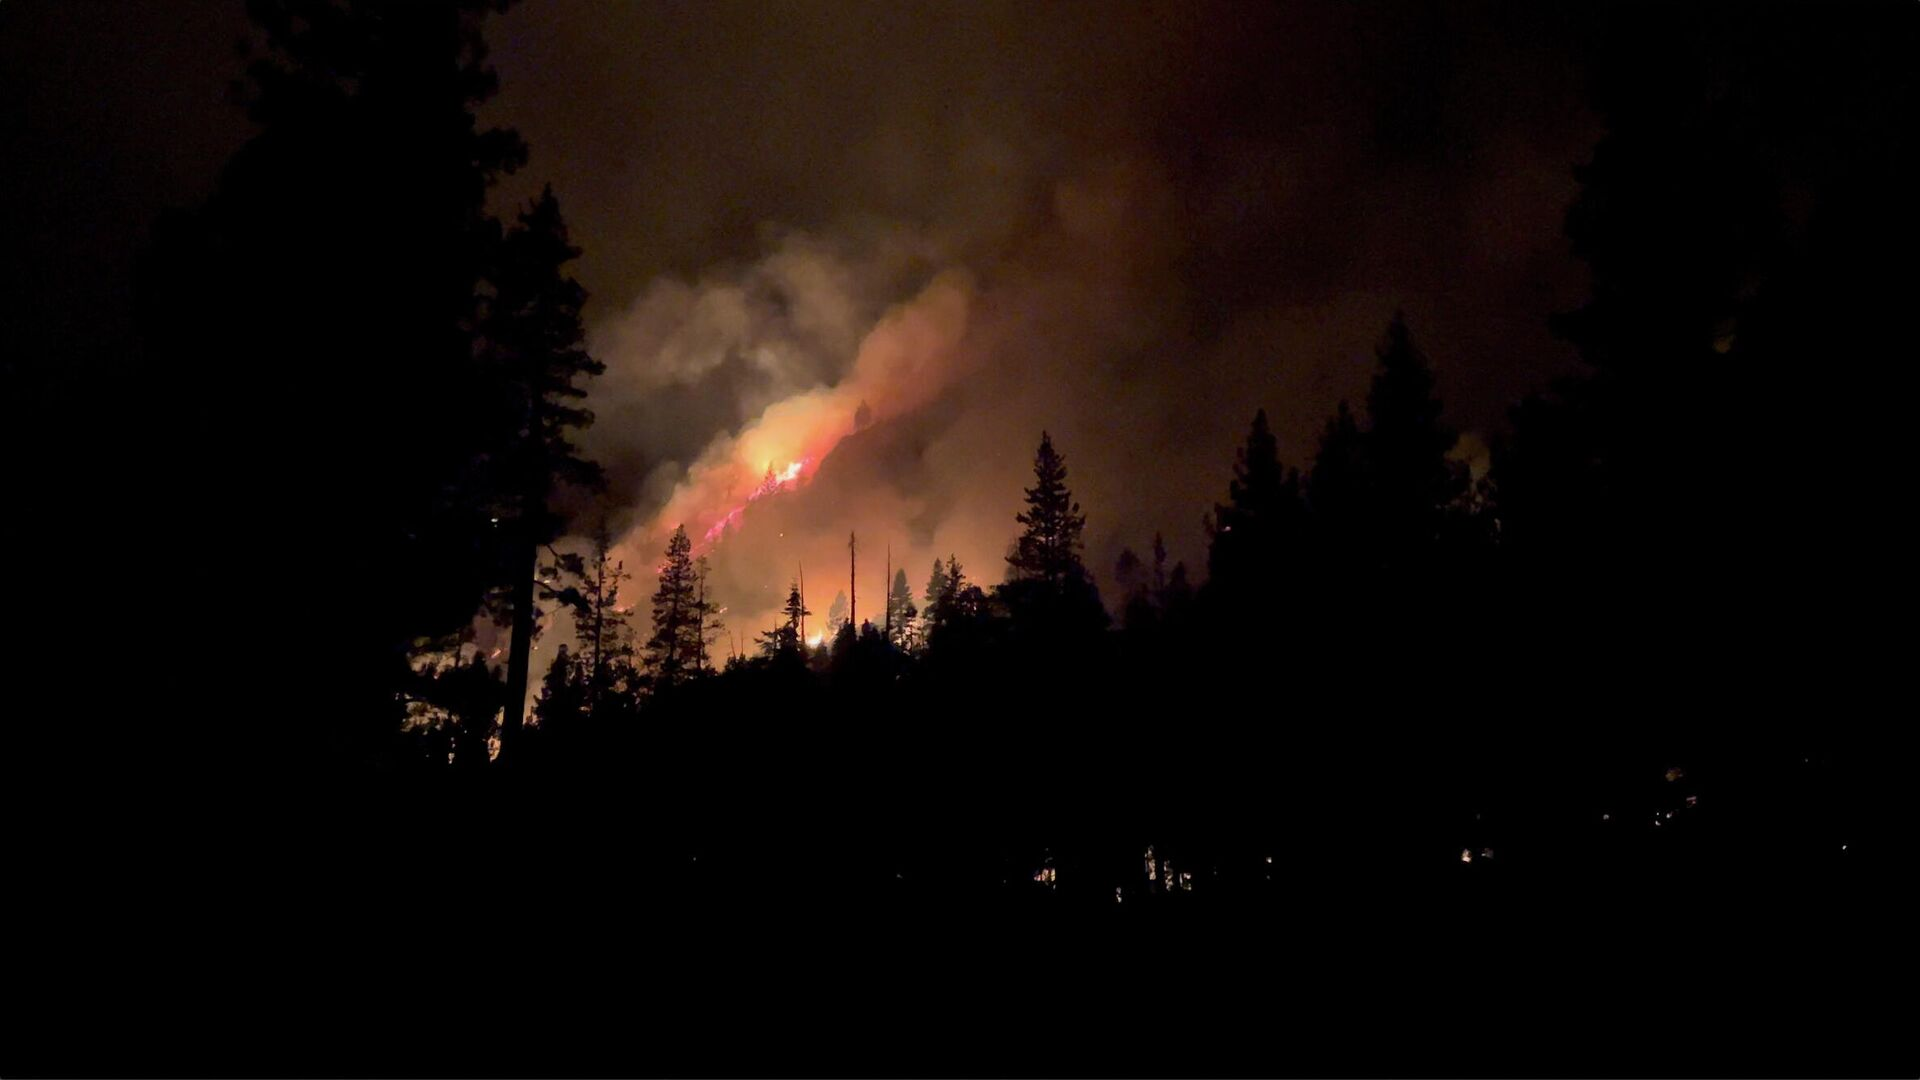 Smoke and flames are seen amid an early morning wildfire in South Lake Tahoe, California, U.S. August 31, 2021, in this still image from video obtained via social media - Sputnik International, 1920, 16.09.2021